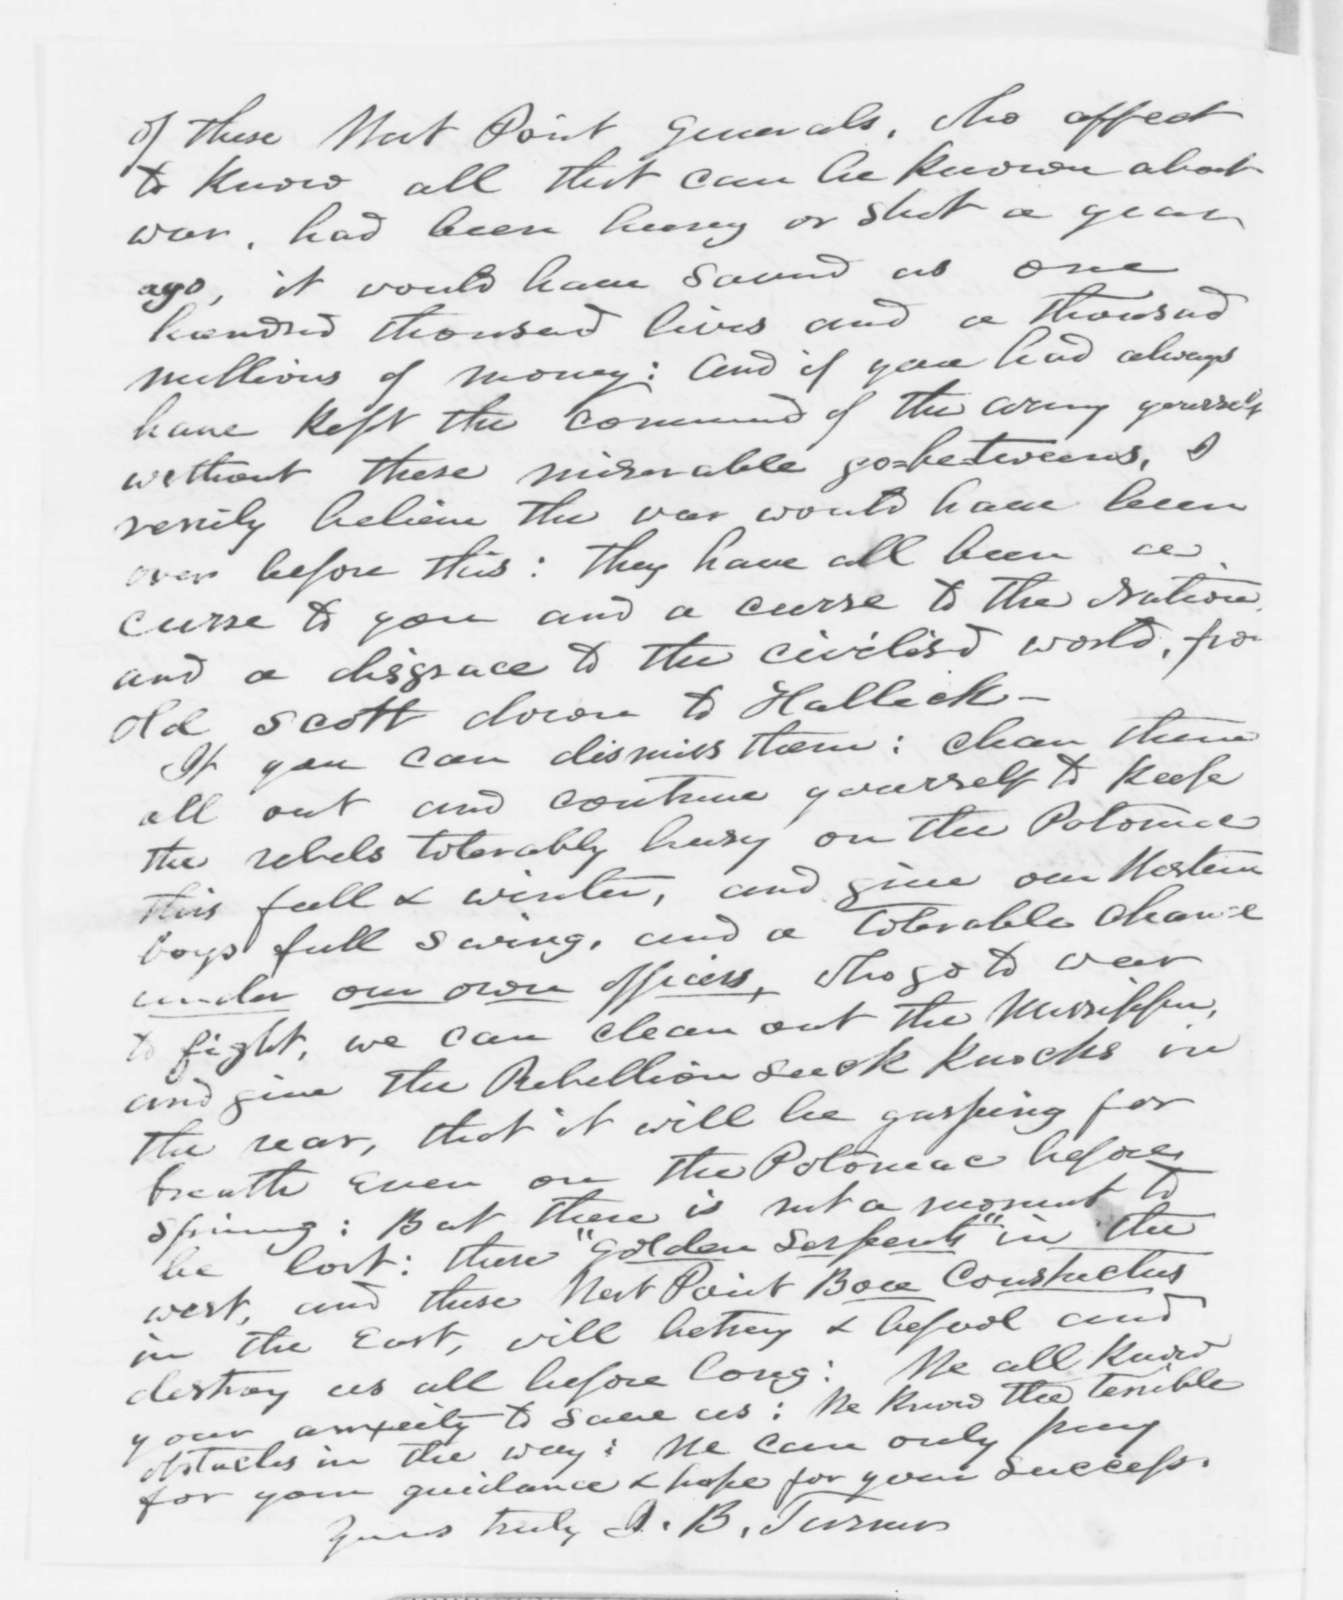 Jonathan B. Turner to Abraham Lincoln, October 1862  (Views on the conduct of the war)